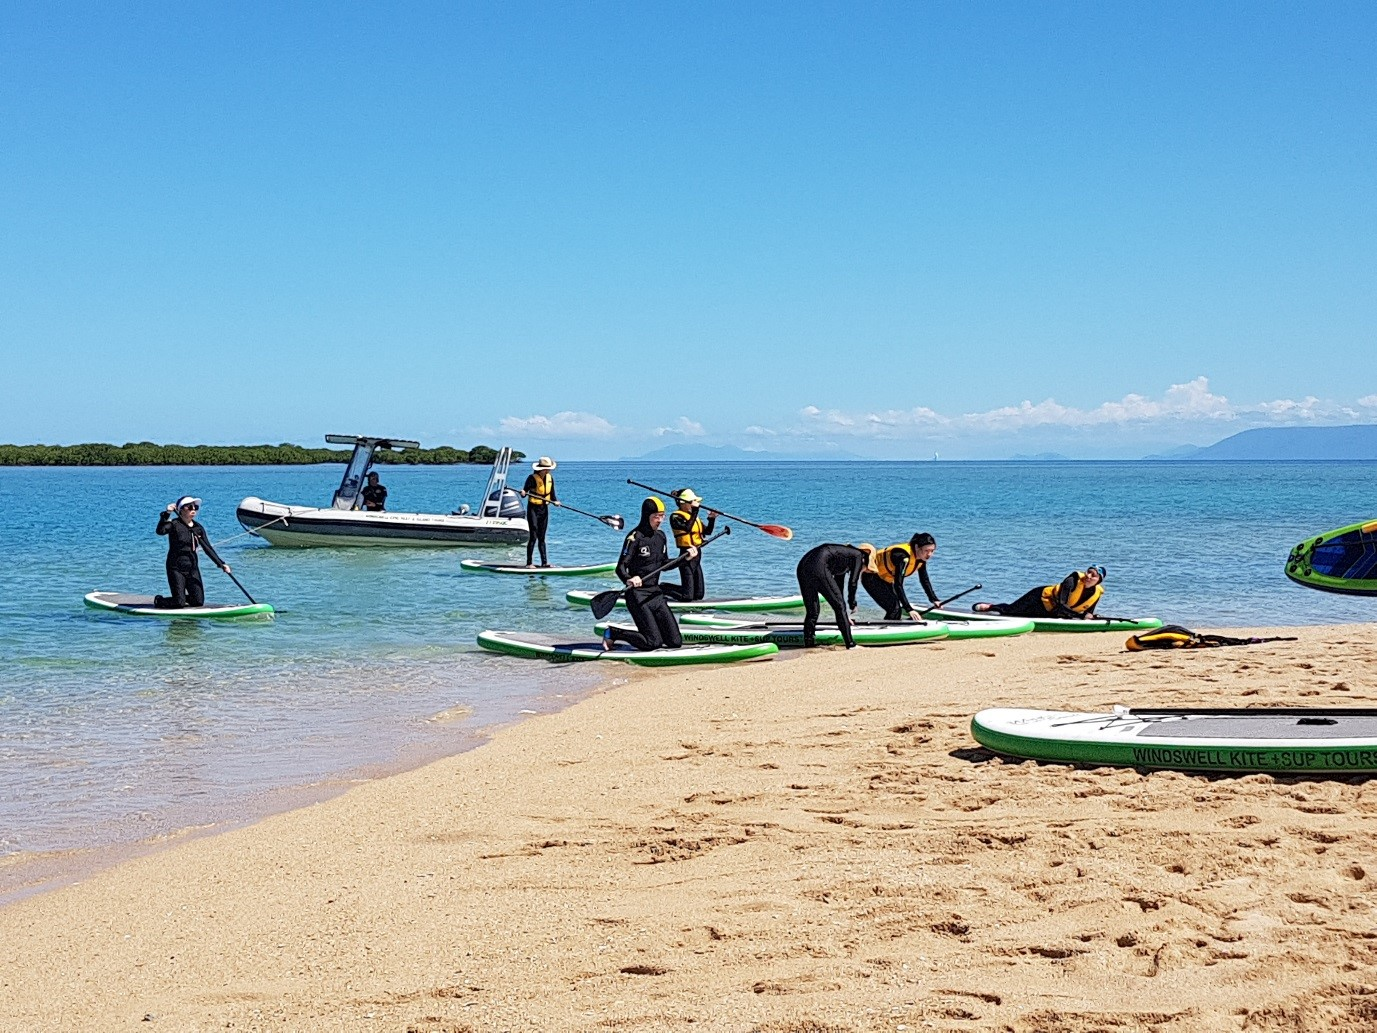 Group Activity - Stand Up Paddle Board